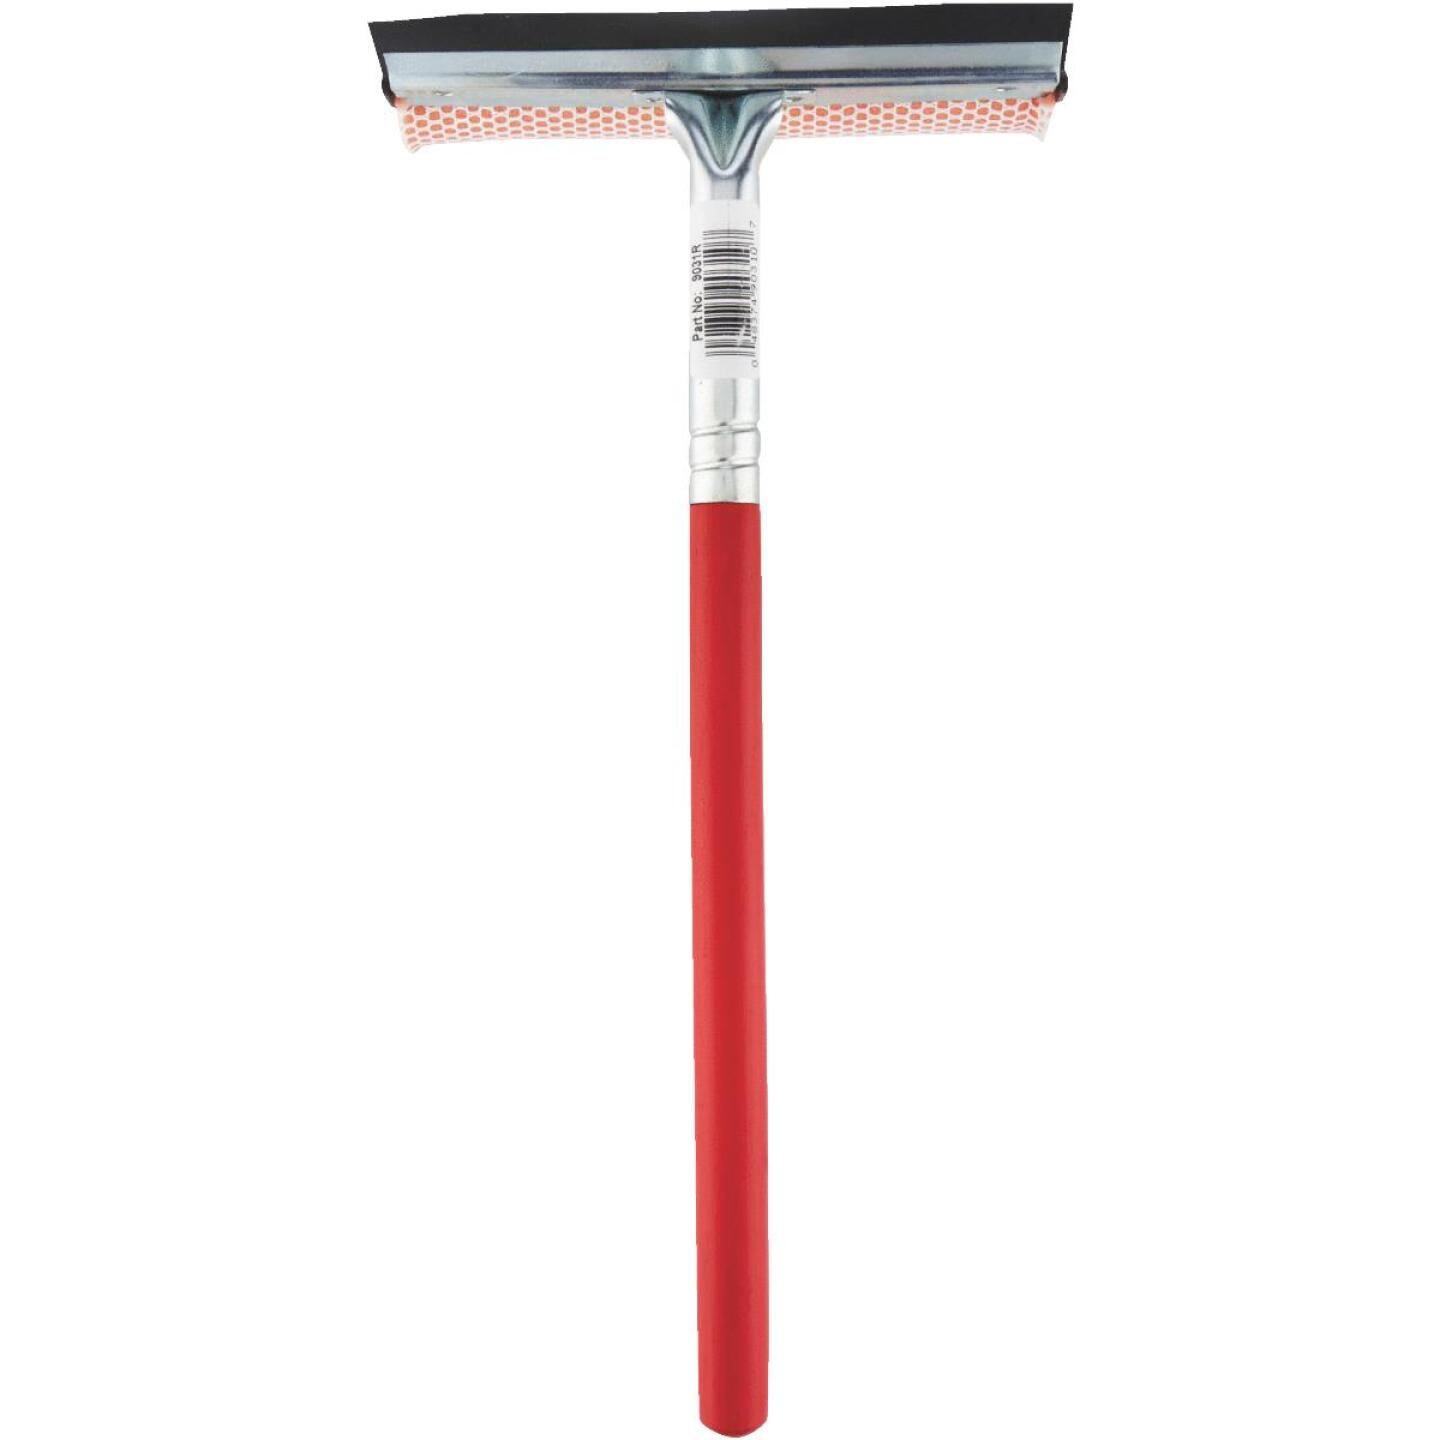 Viking 20 In. L Heavy-Duty Windshield Squeegee Image 2